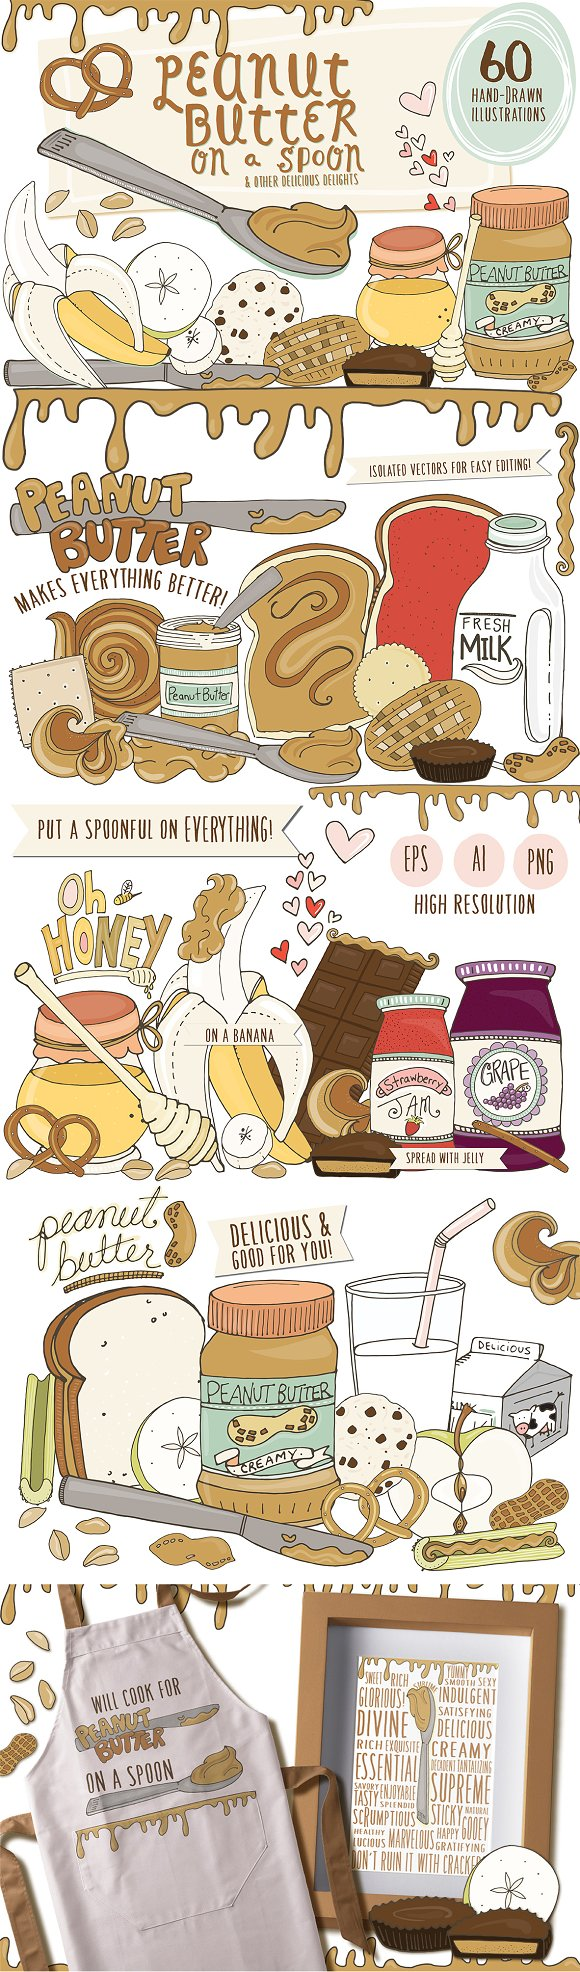 Peanut Butter Fun Food Illustrations